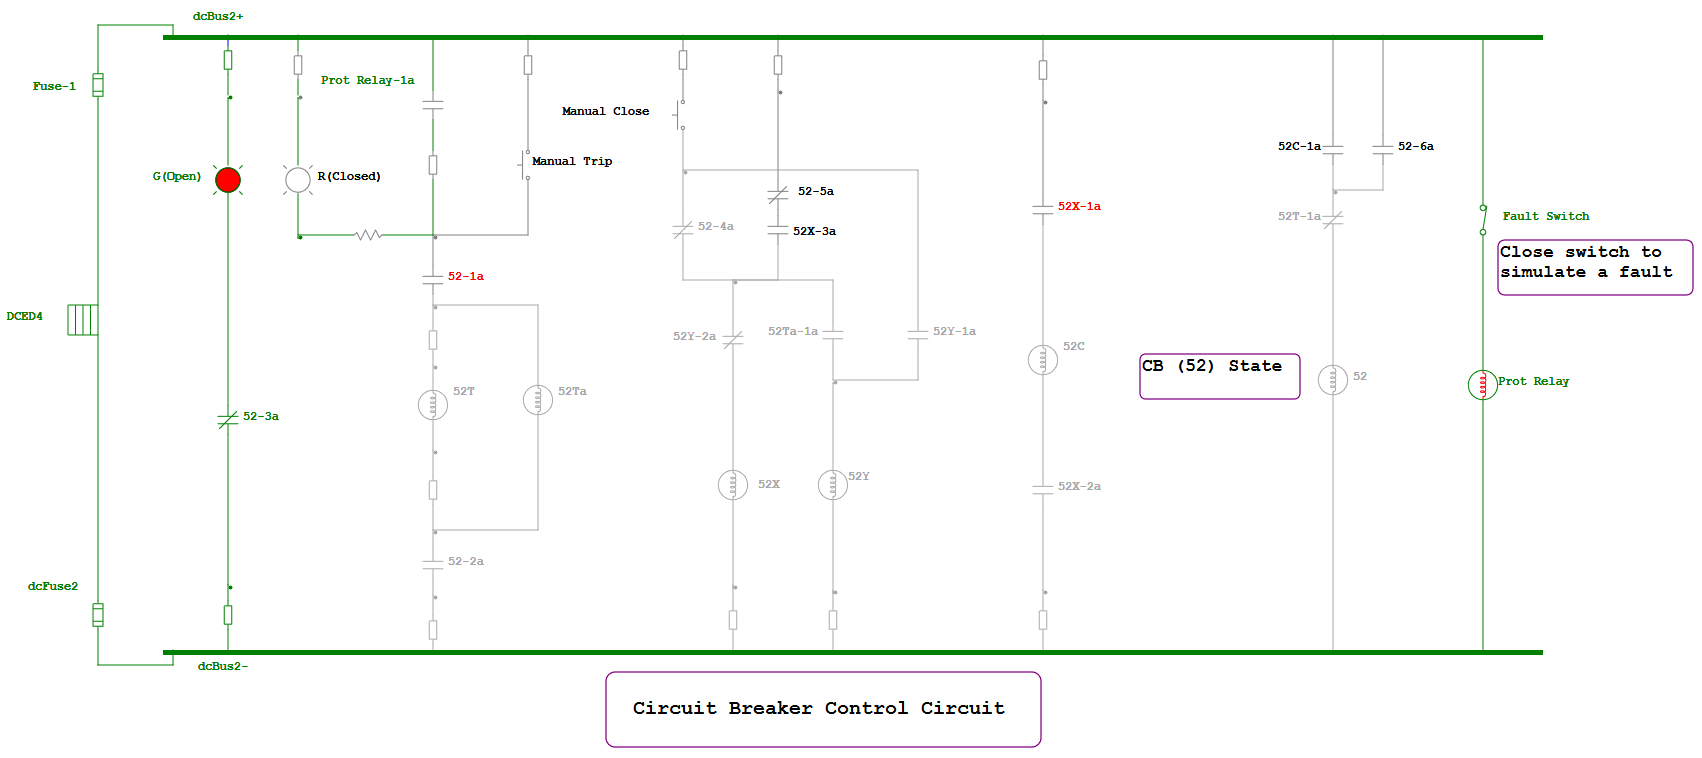 DC Control Systems Diagram for circuit breaker control circuit